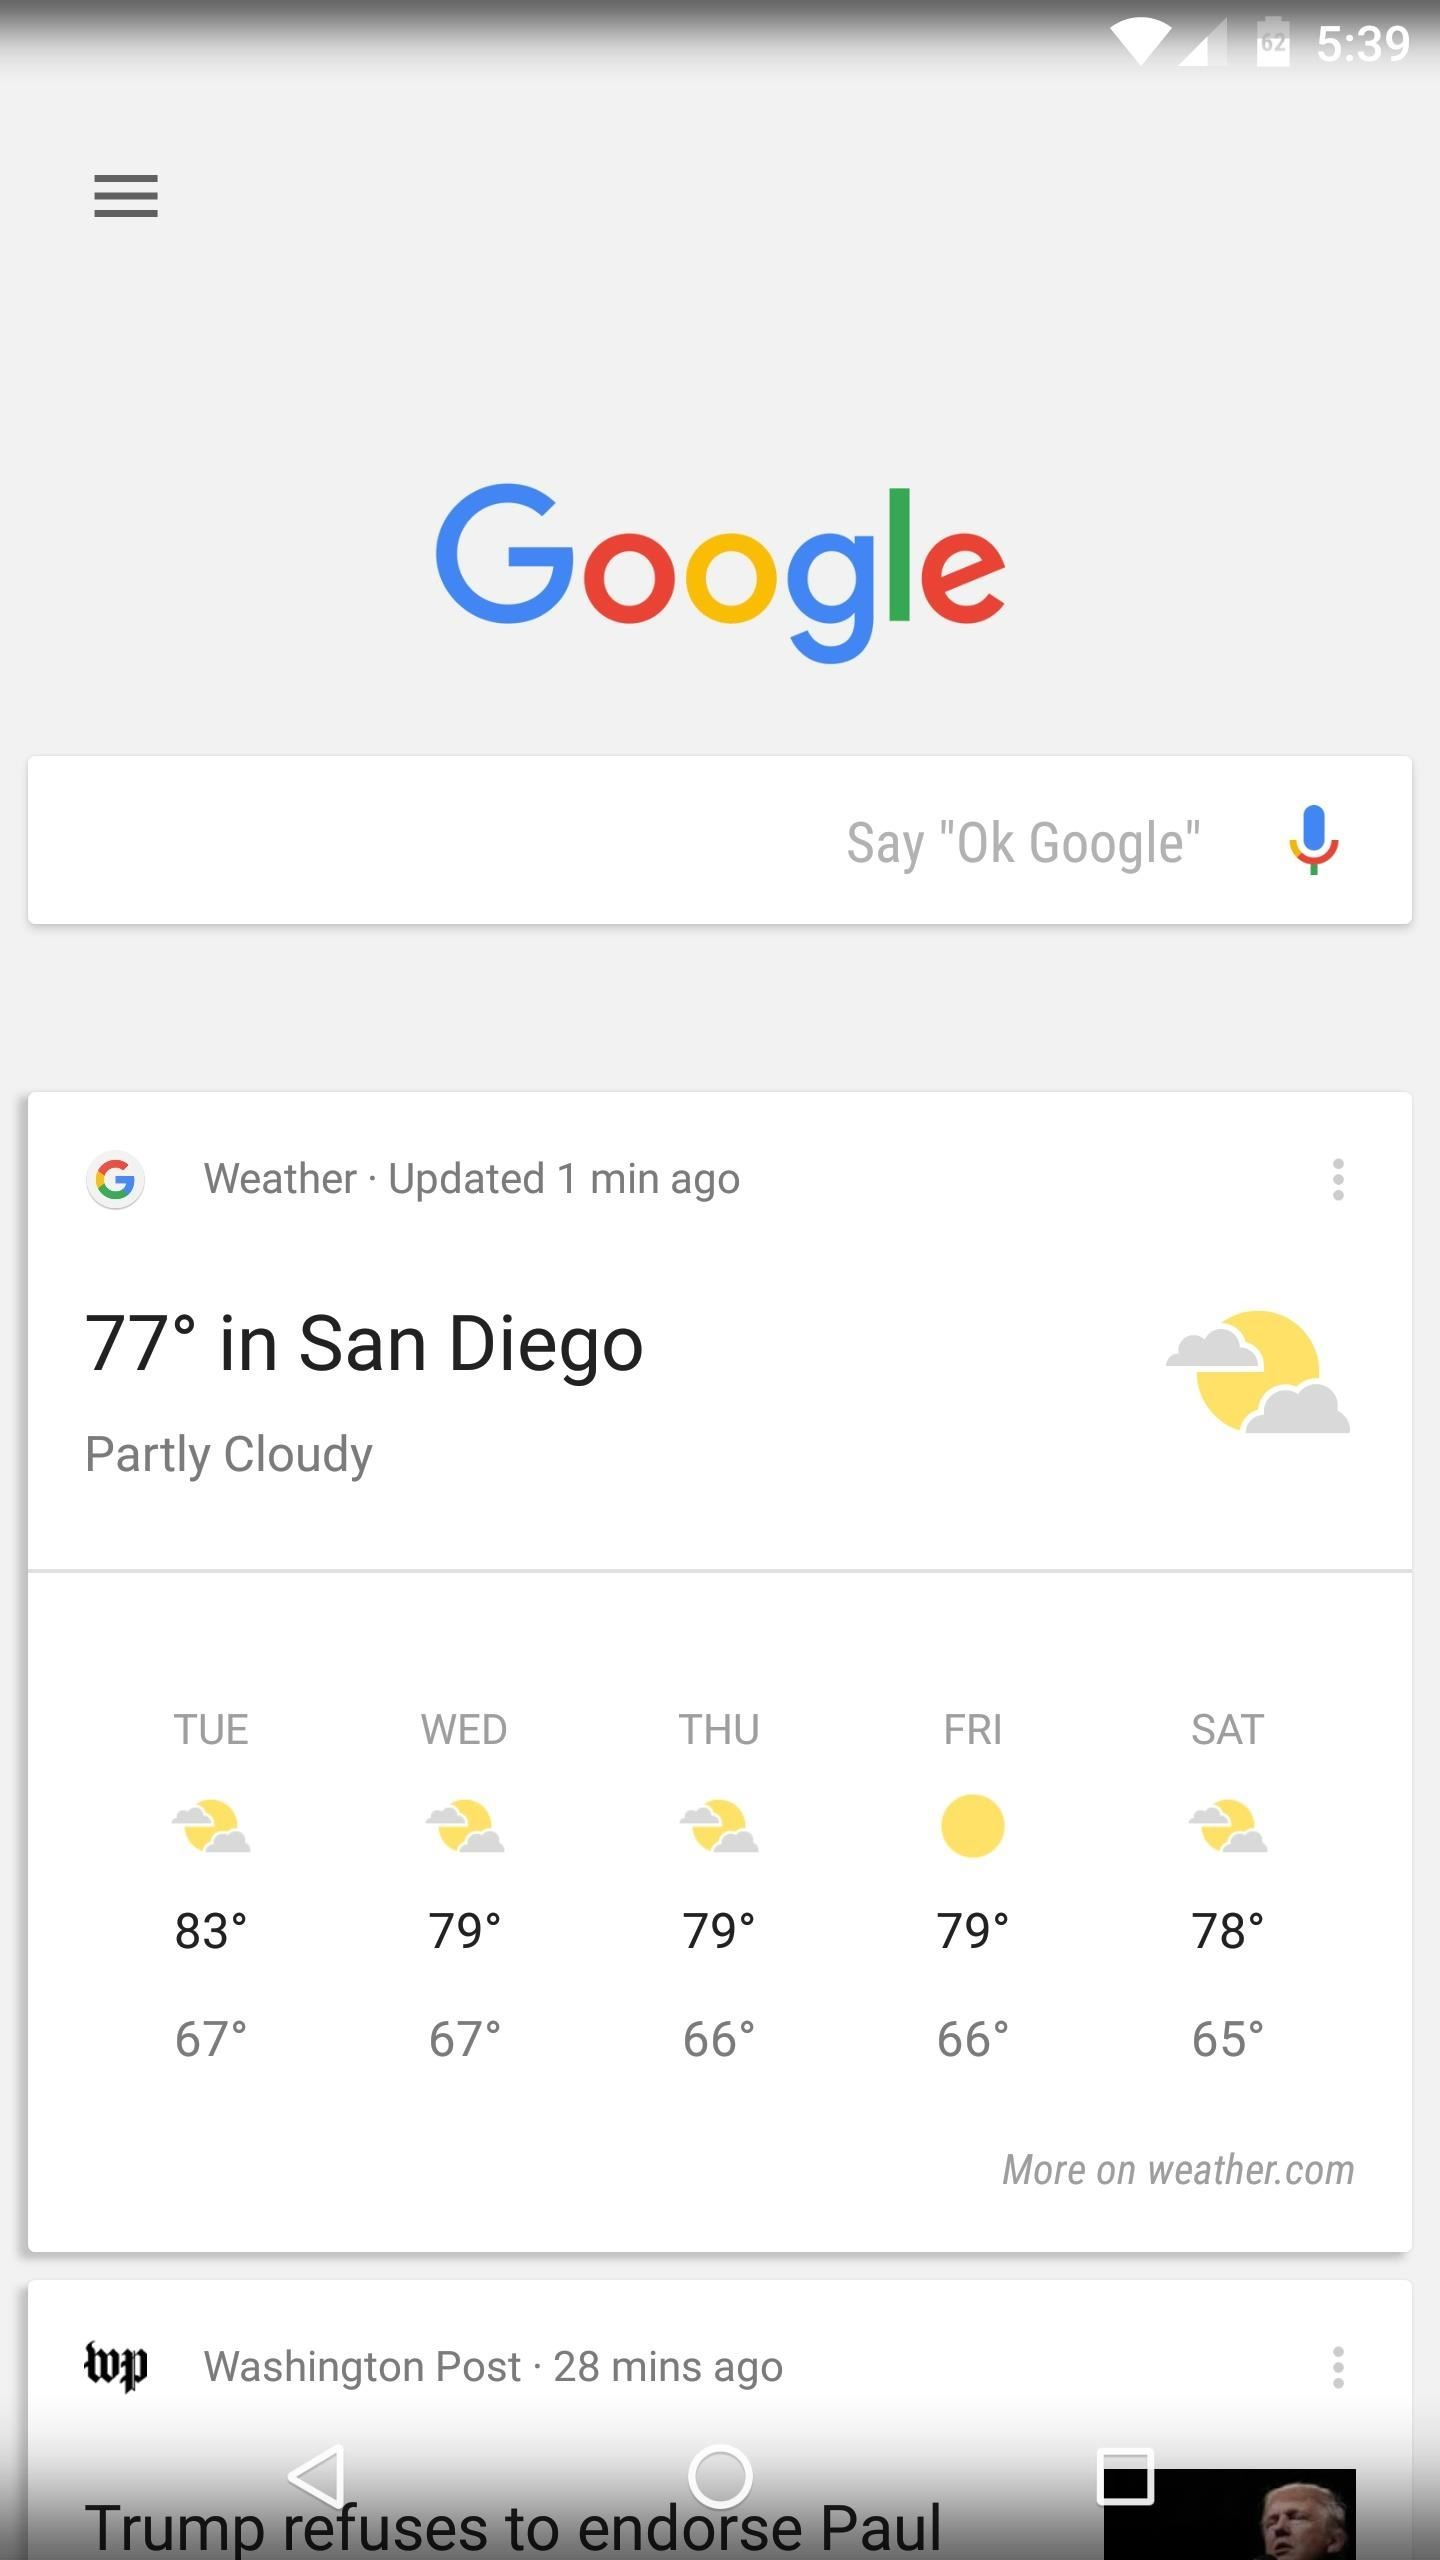 Get Google's Brand New Pixel Launcher on Any Android Device